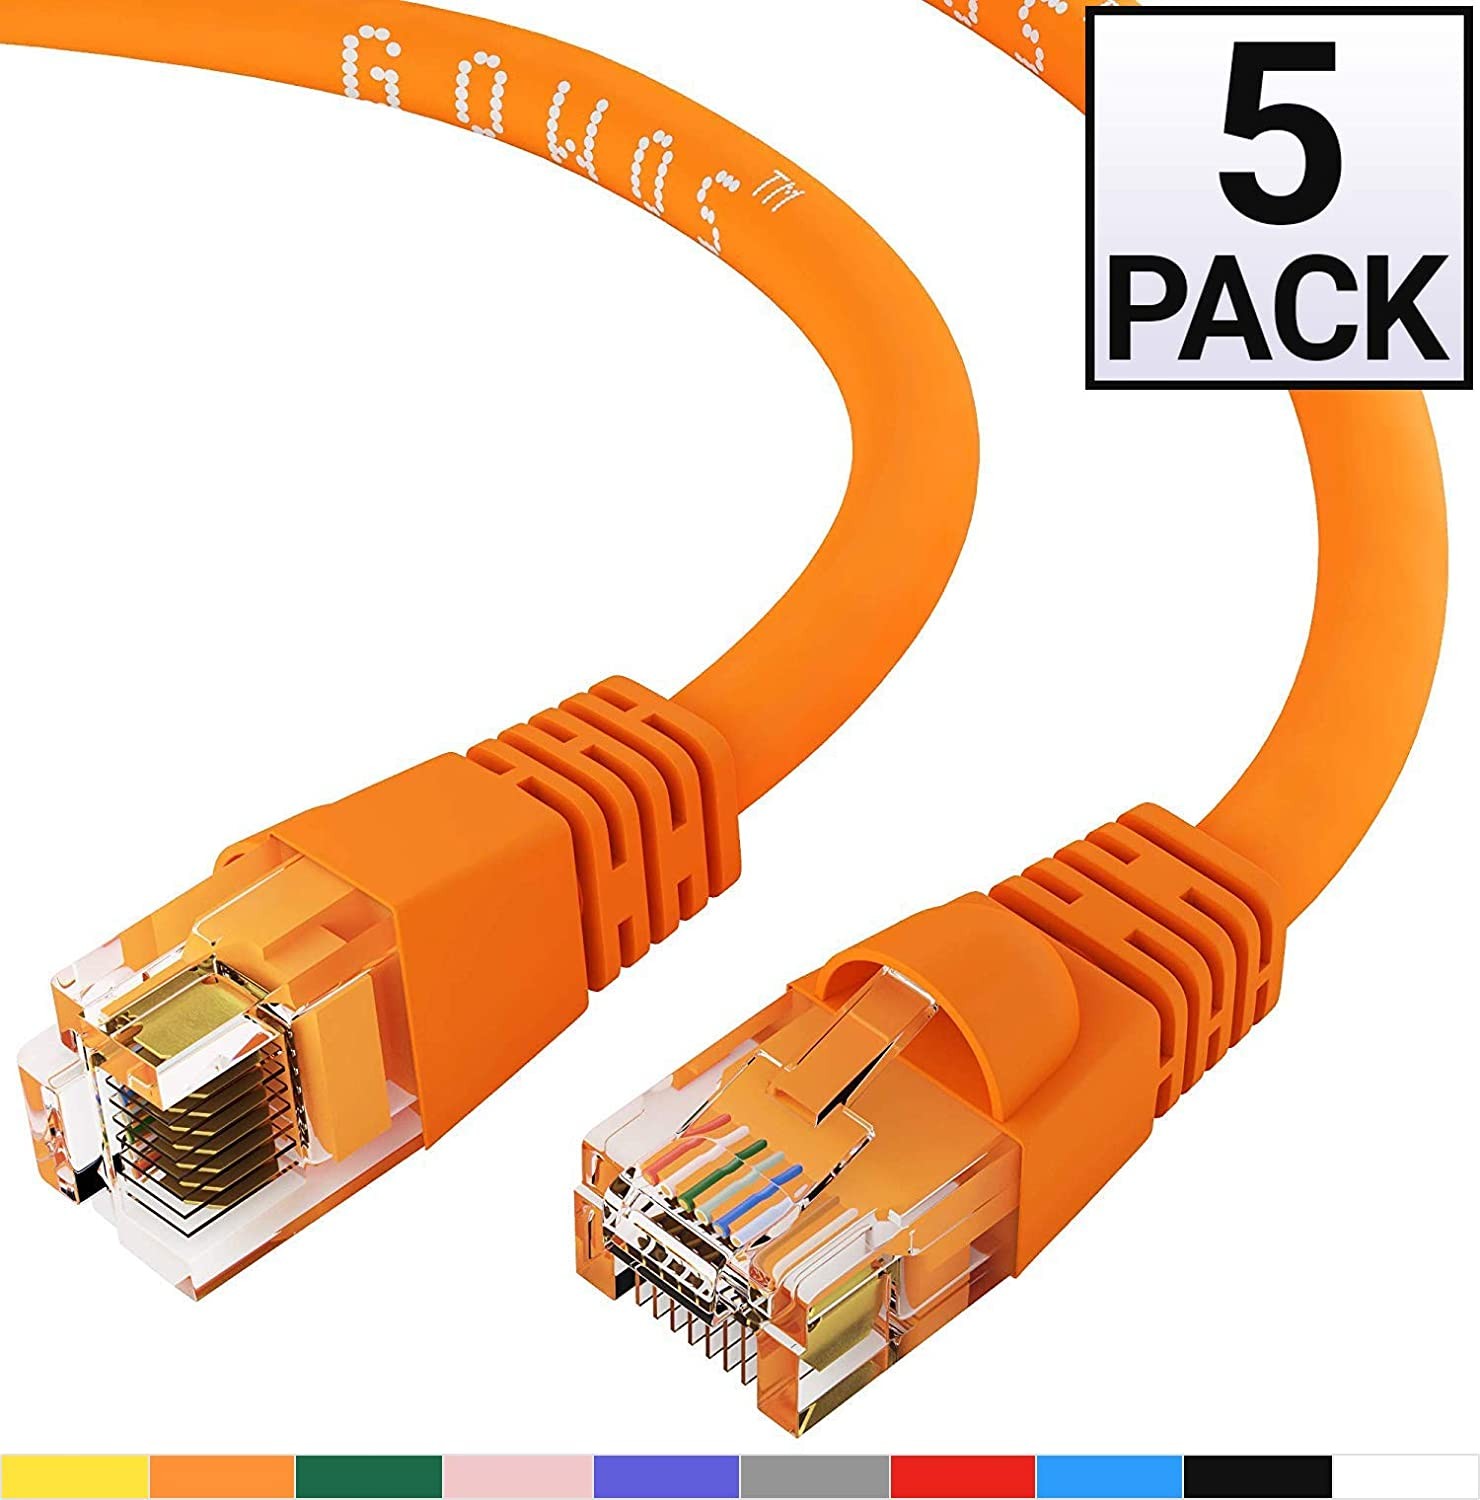 Cat6 Ethernet Cable Computer Network Cable with Snagless Connector RJ45 10Gbps High Speed LAN Internet Patch Cord UTP GOWOS 20-Pack Available in 28 Lengths and 10 Colors 14 Feet - Red